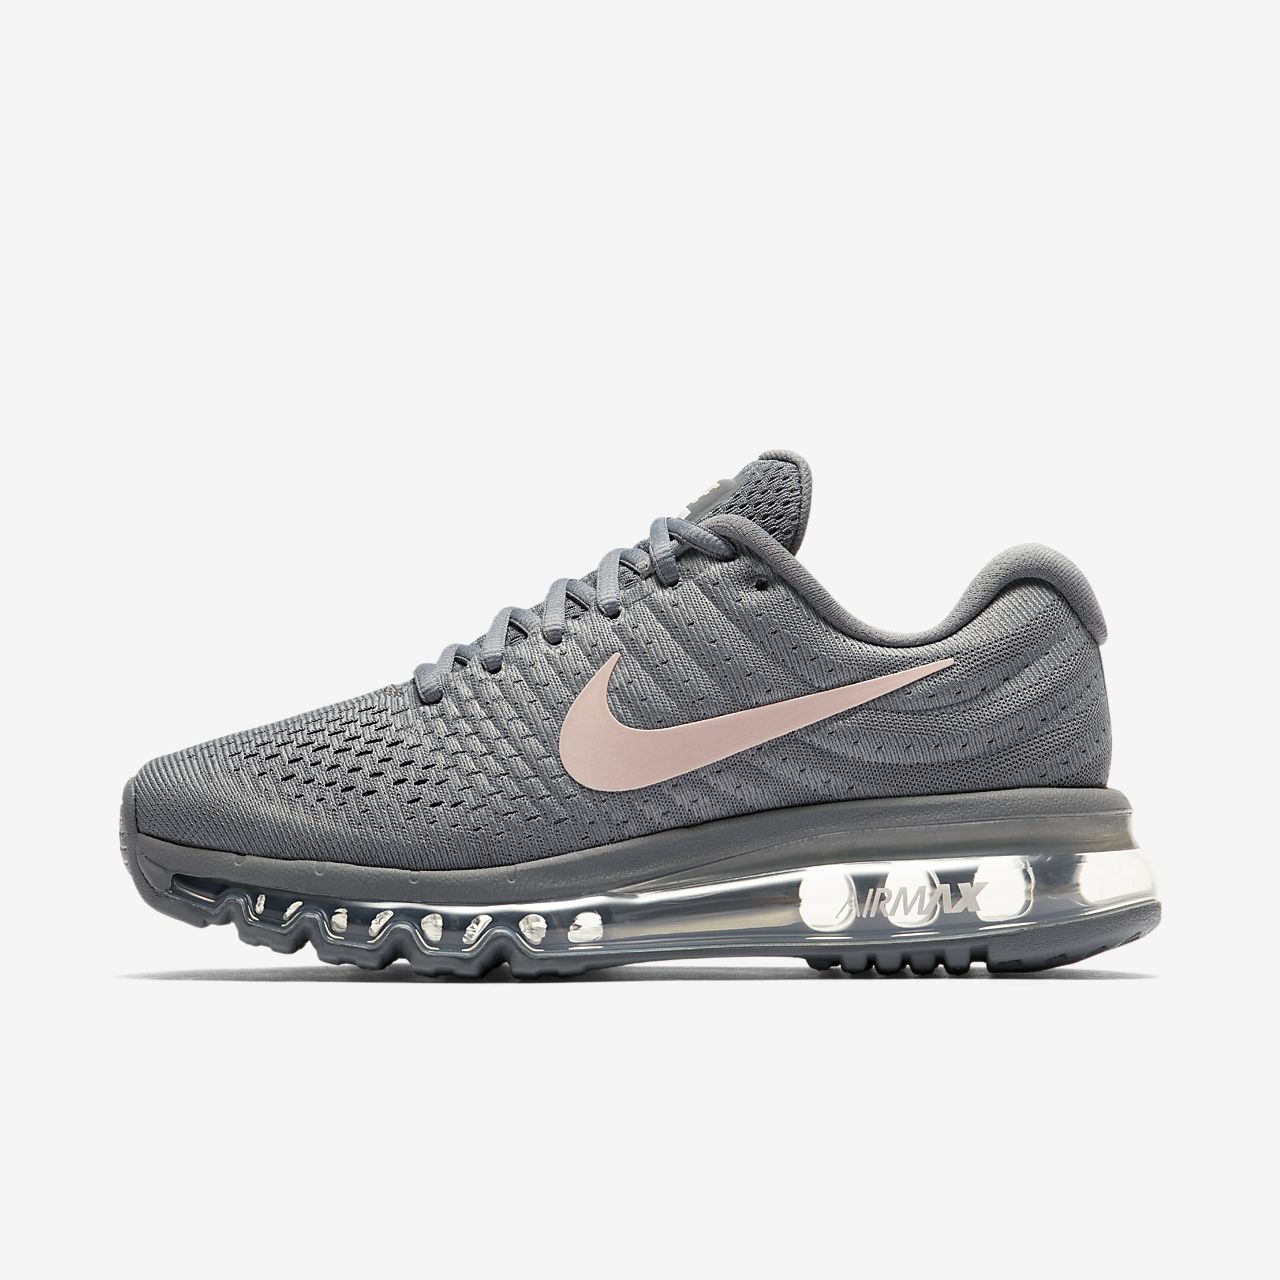 uk availability 6b651 649c5 official store cheap nike air max 2017 womens trainers in white uk sale  2f5bf e7c1b  switzerland nike air max 2017 womens shoe 48695 71362